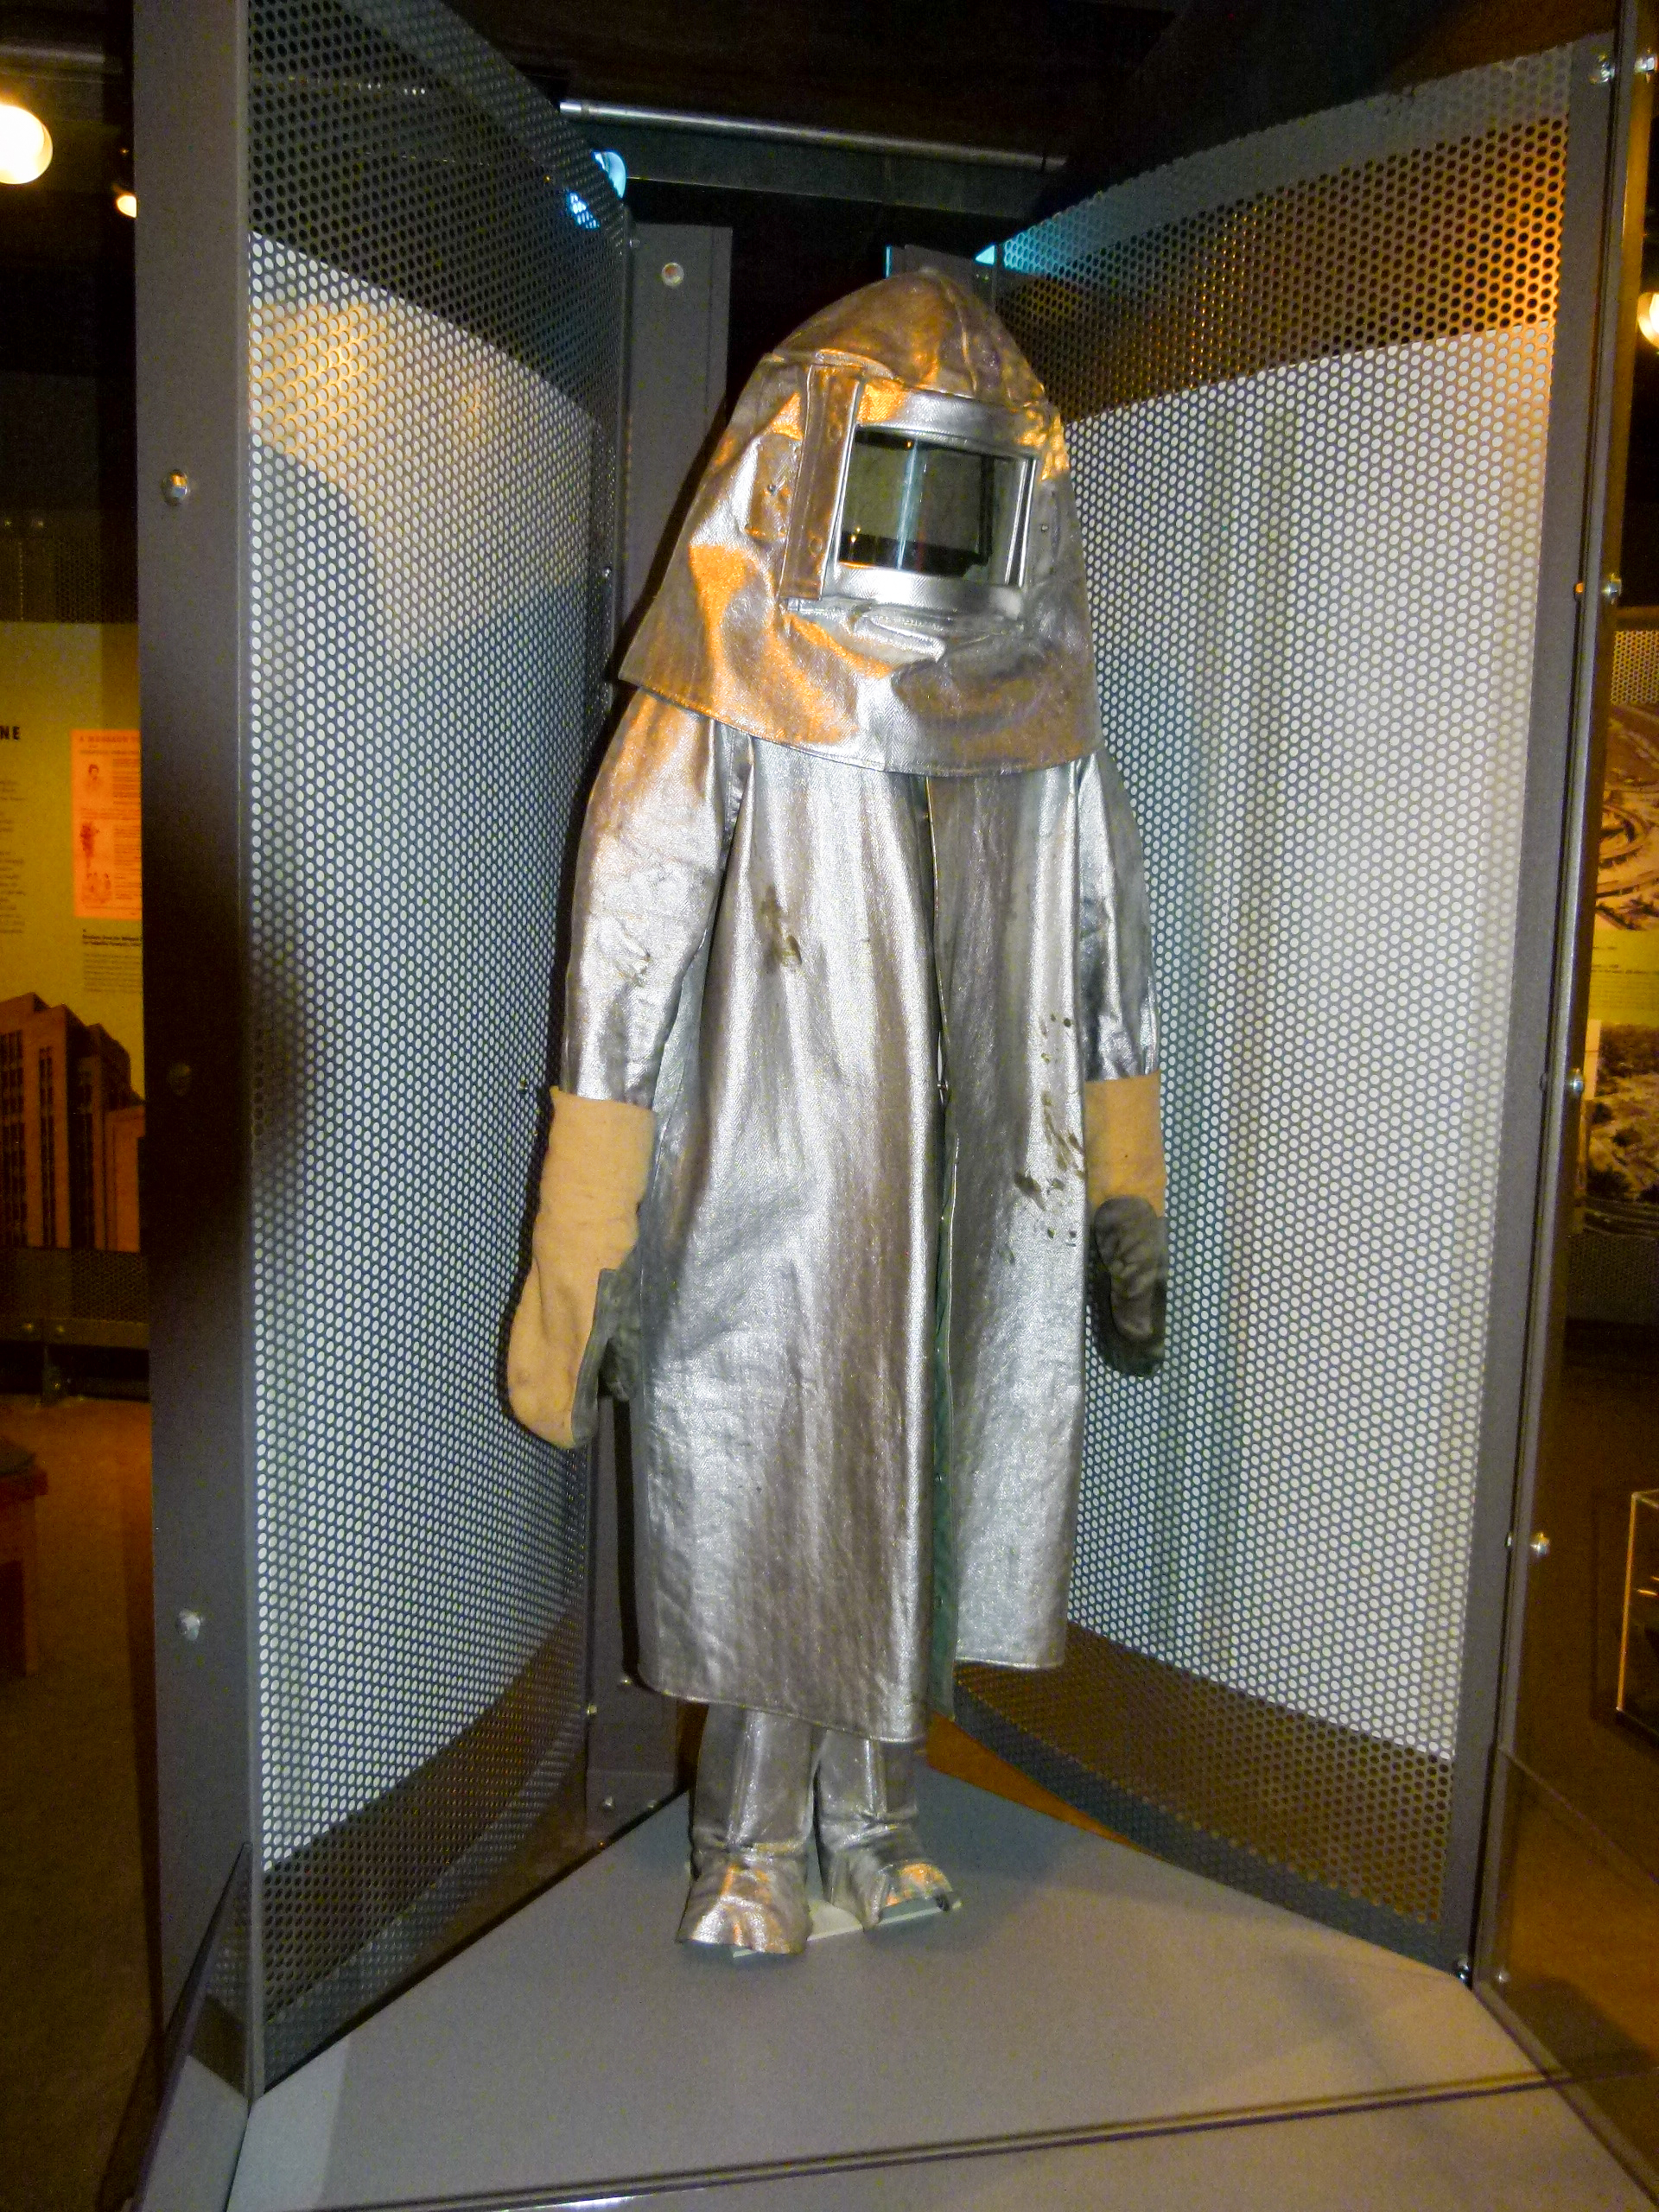 No this isn't an early NASA spacesuit, it's protective gear that steelworkers working close to the blast furnace wear.